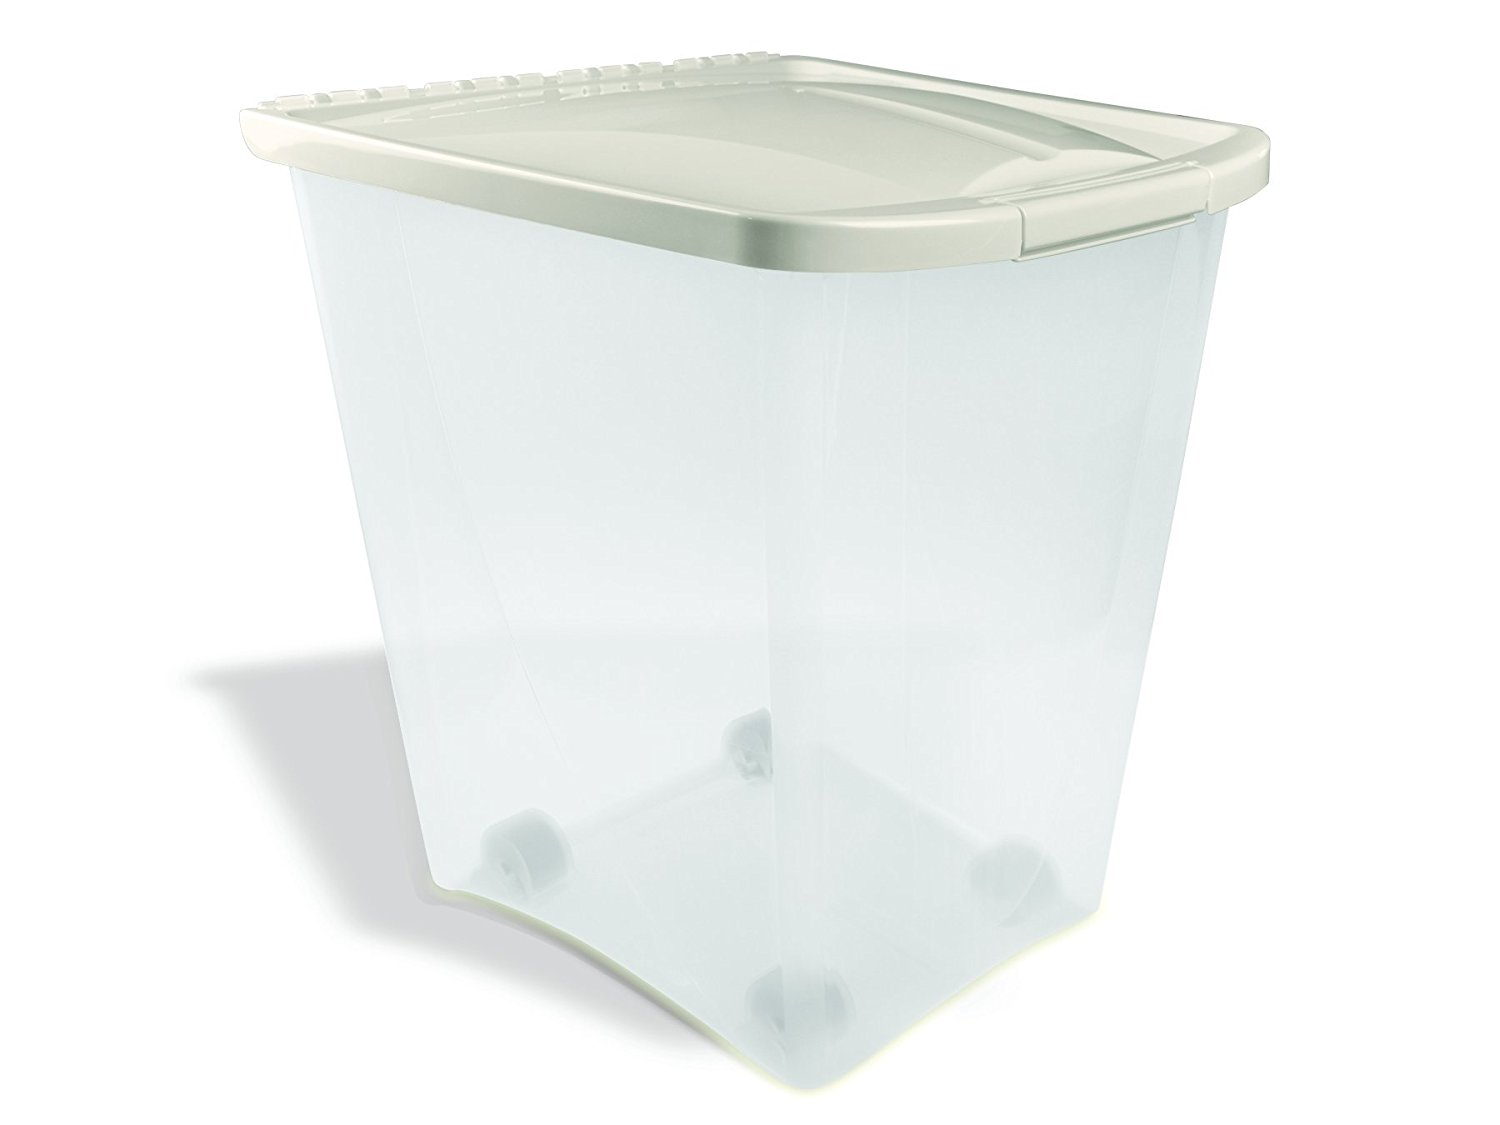 Van Ness 50 Pound Food Container with Wheels